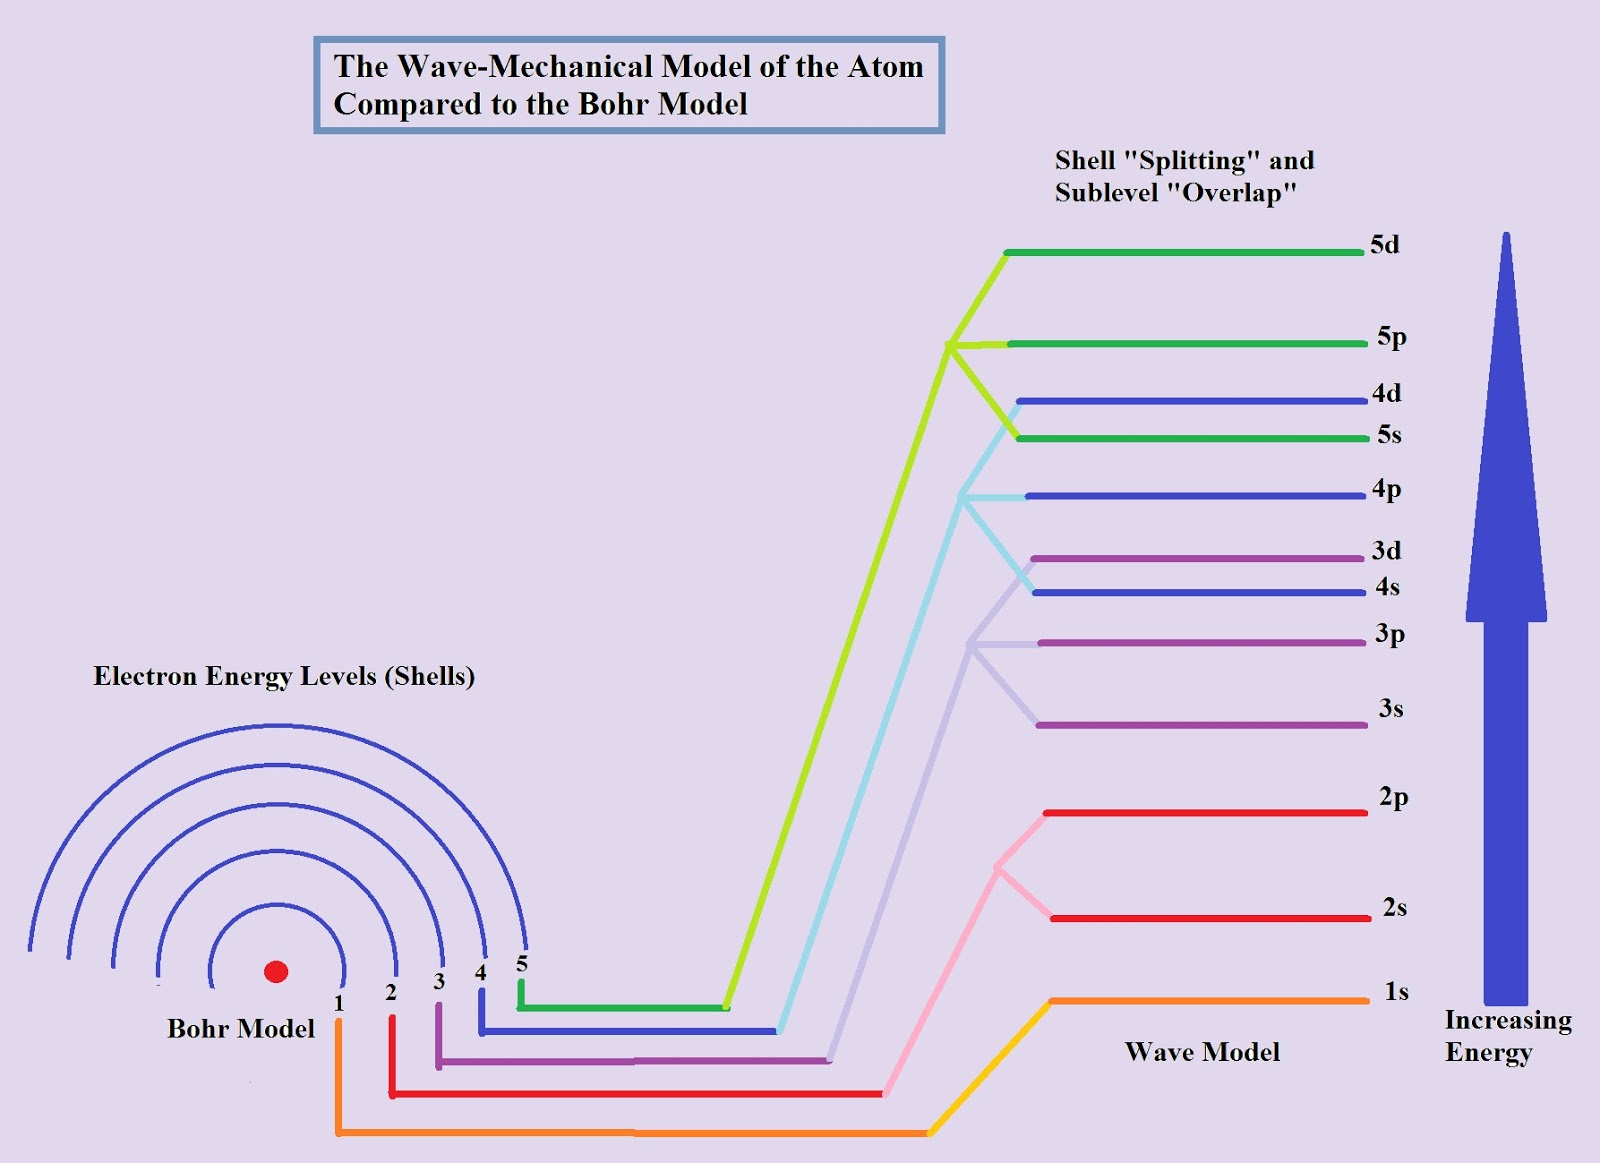 Bohr Electron Configuration Chart Wiring Diagram And Ebooks Model Trane Wphd0197 Arrangement The Wave Mechanical Learning Rh Learningchemistryeasily Blogspot Com